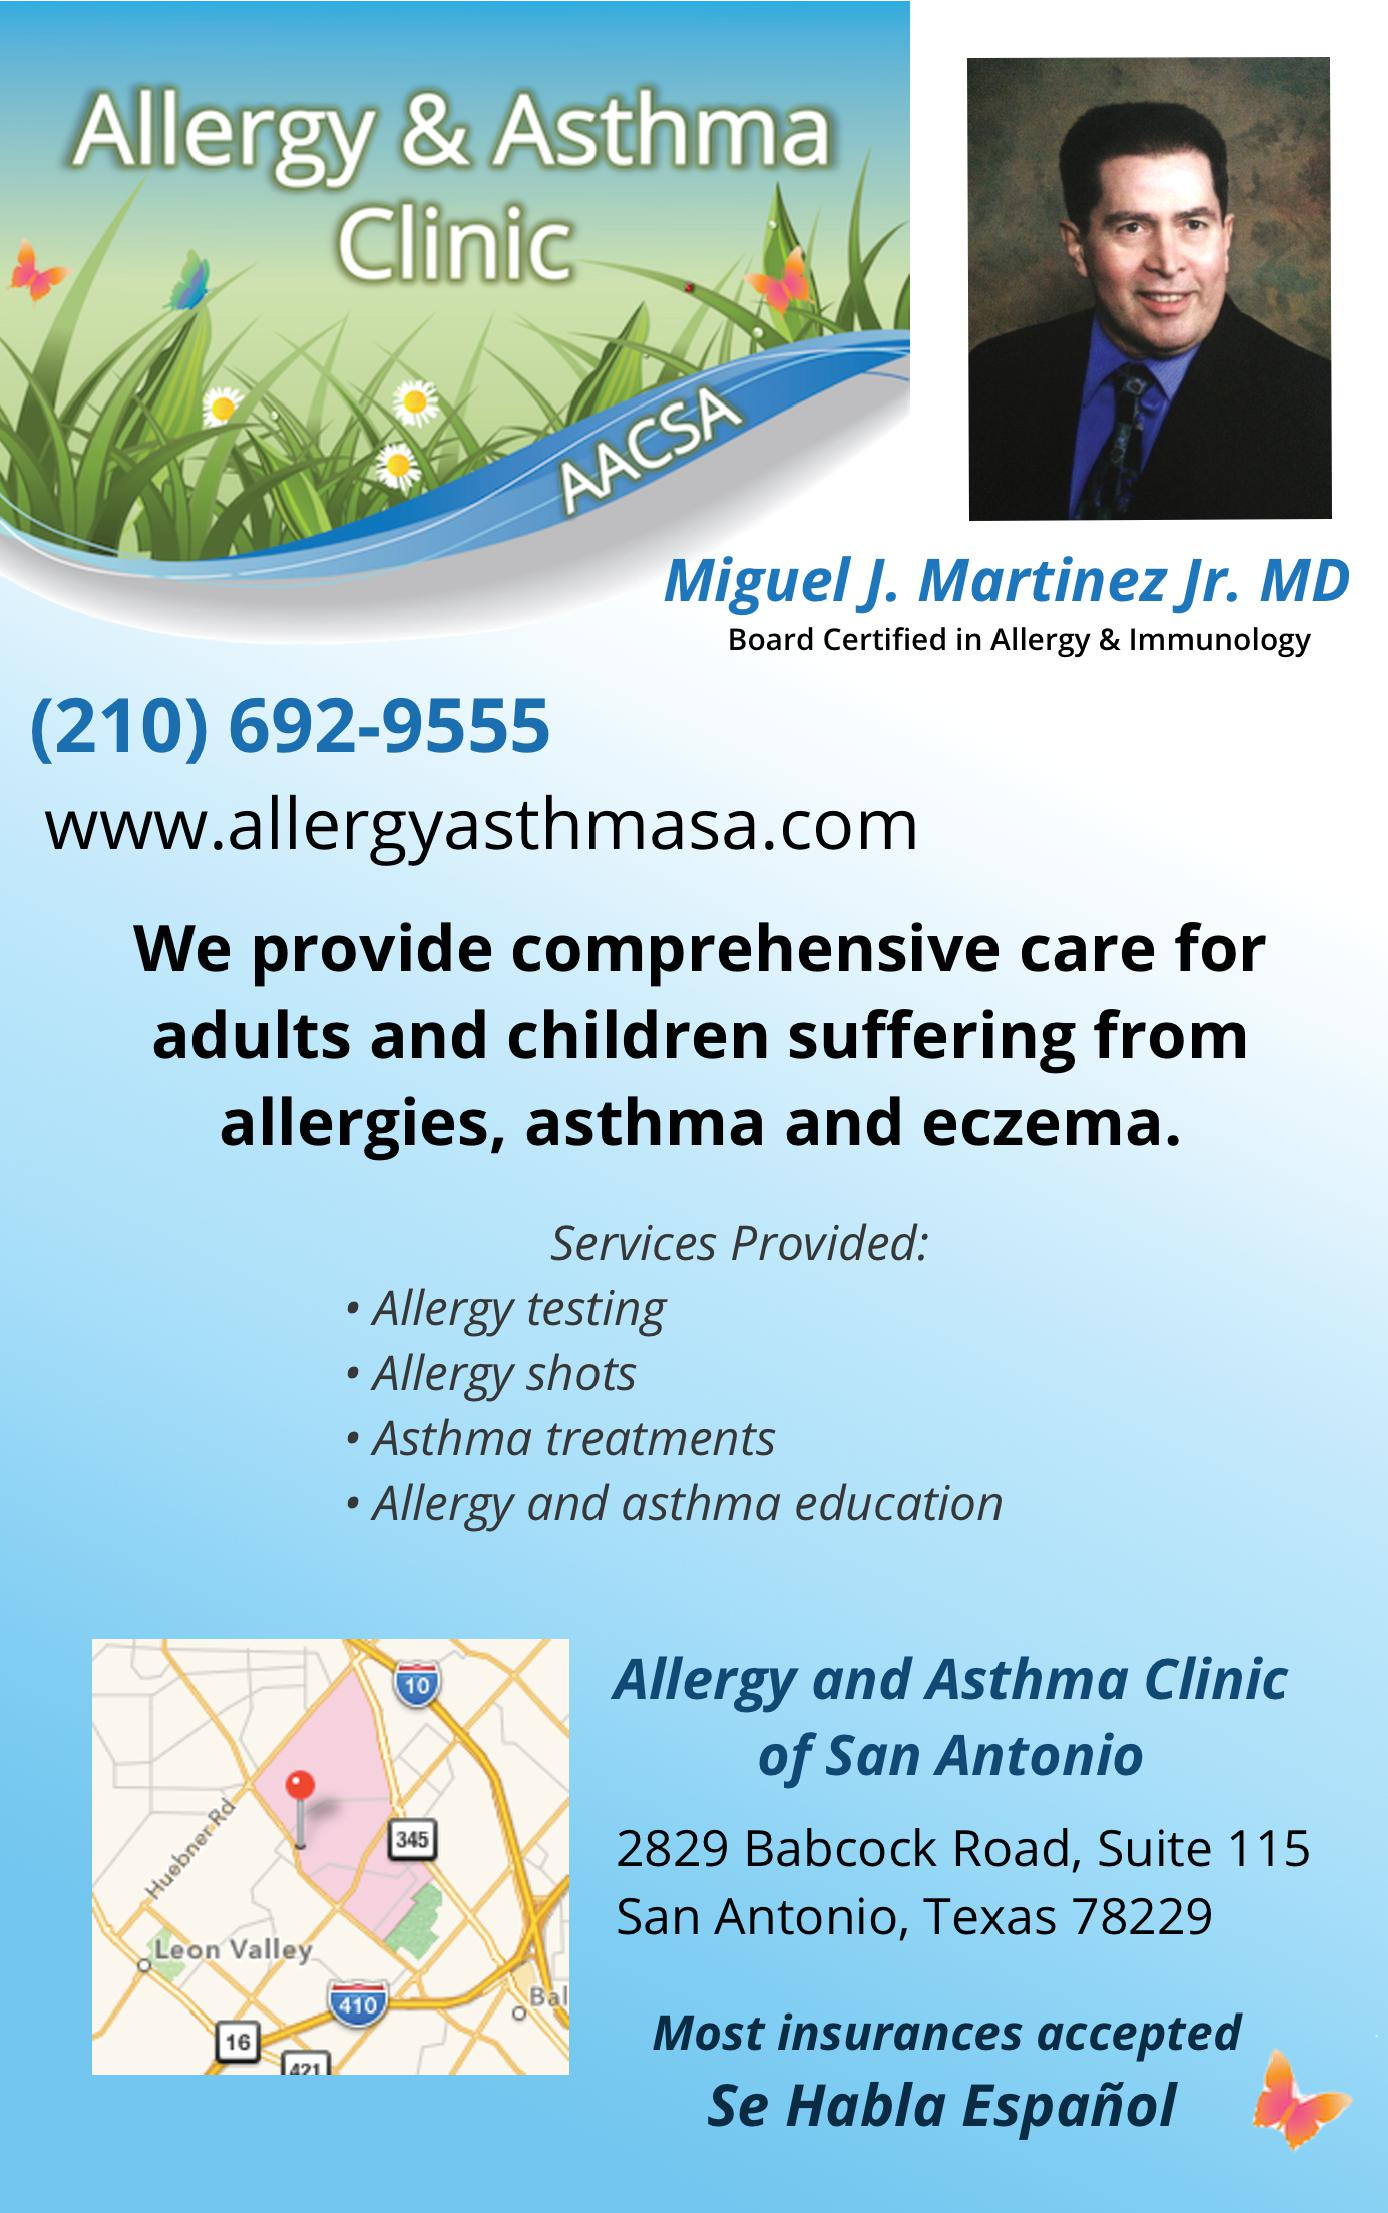 Allergy and Asthma Clinic of San Antonio